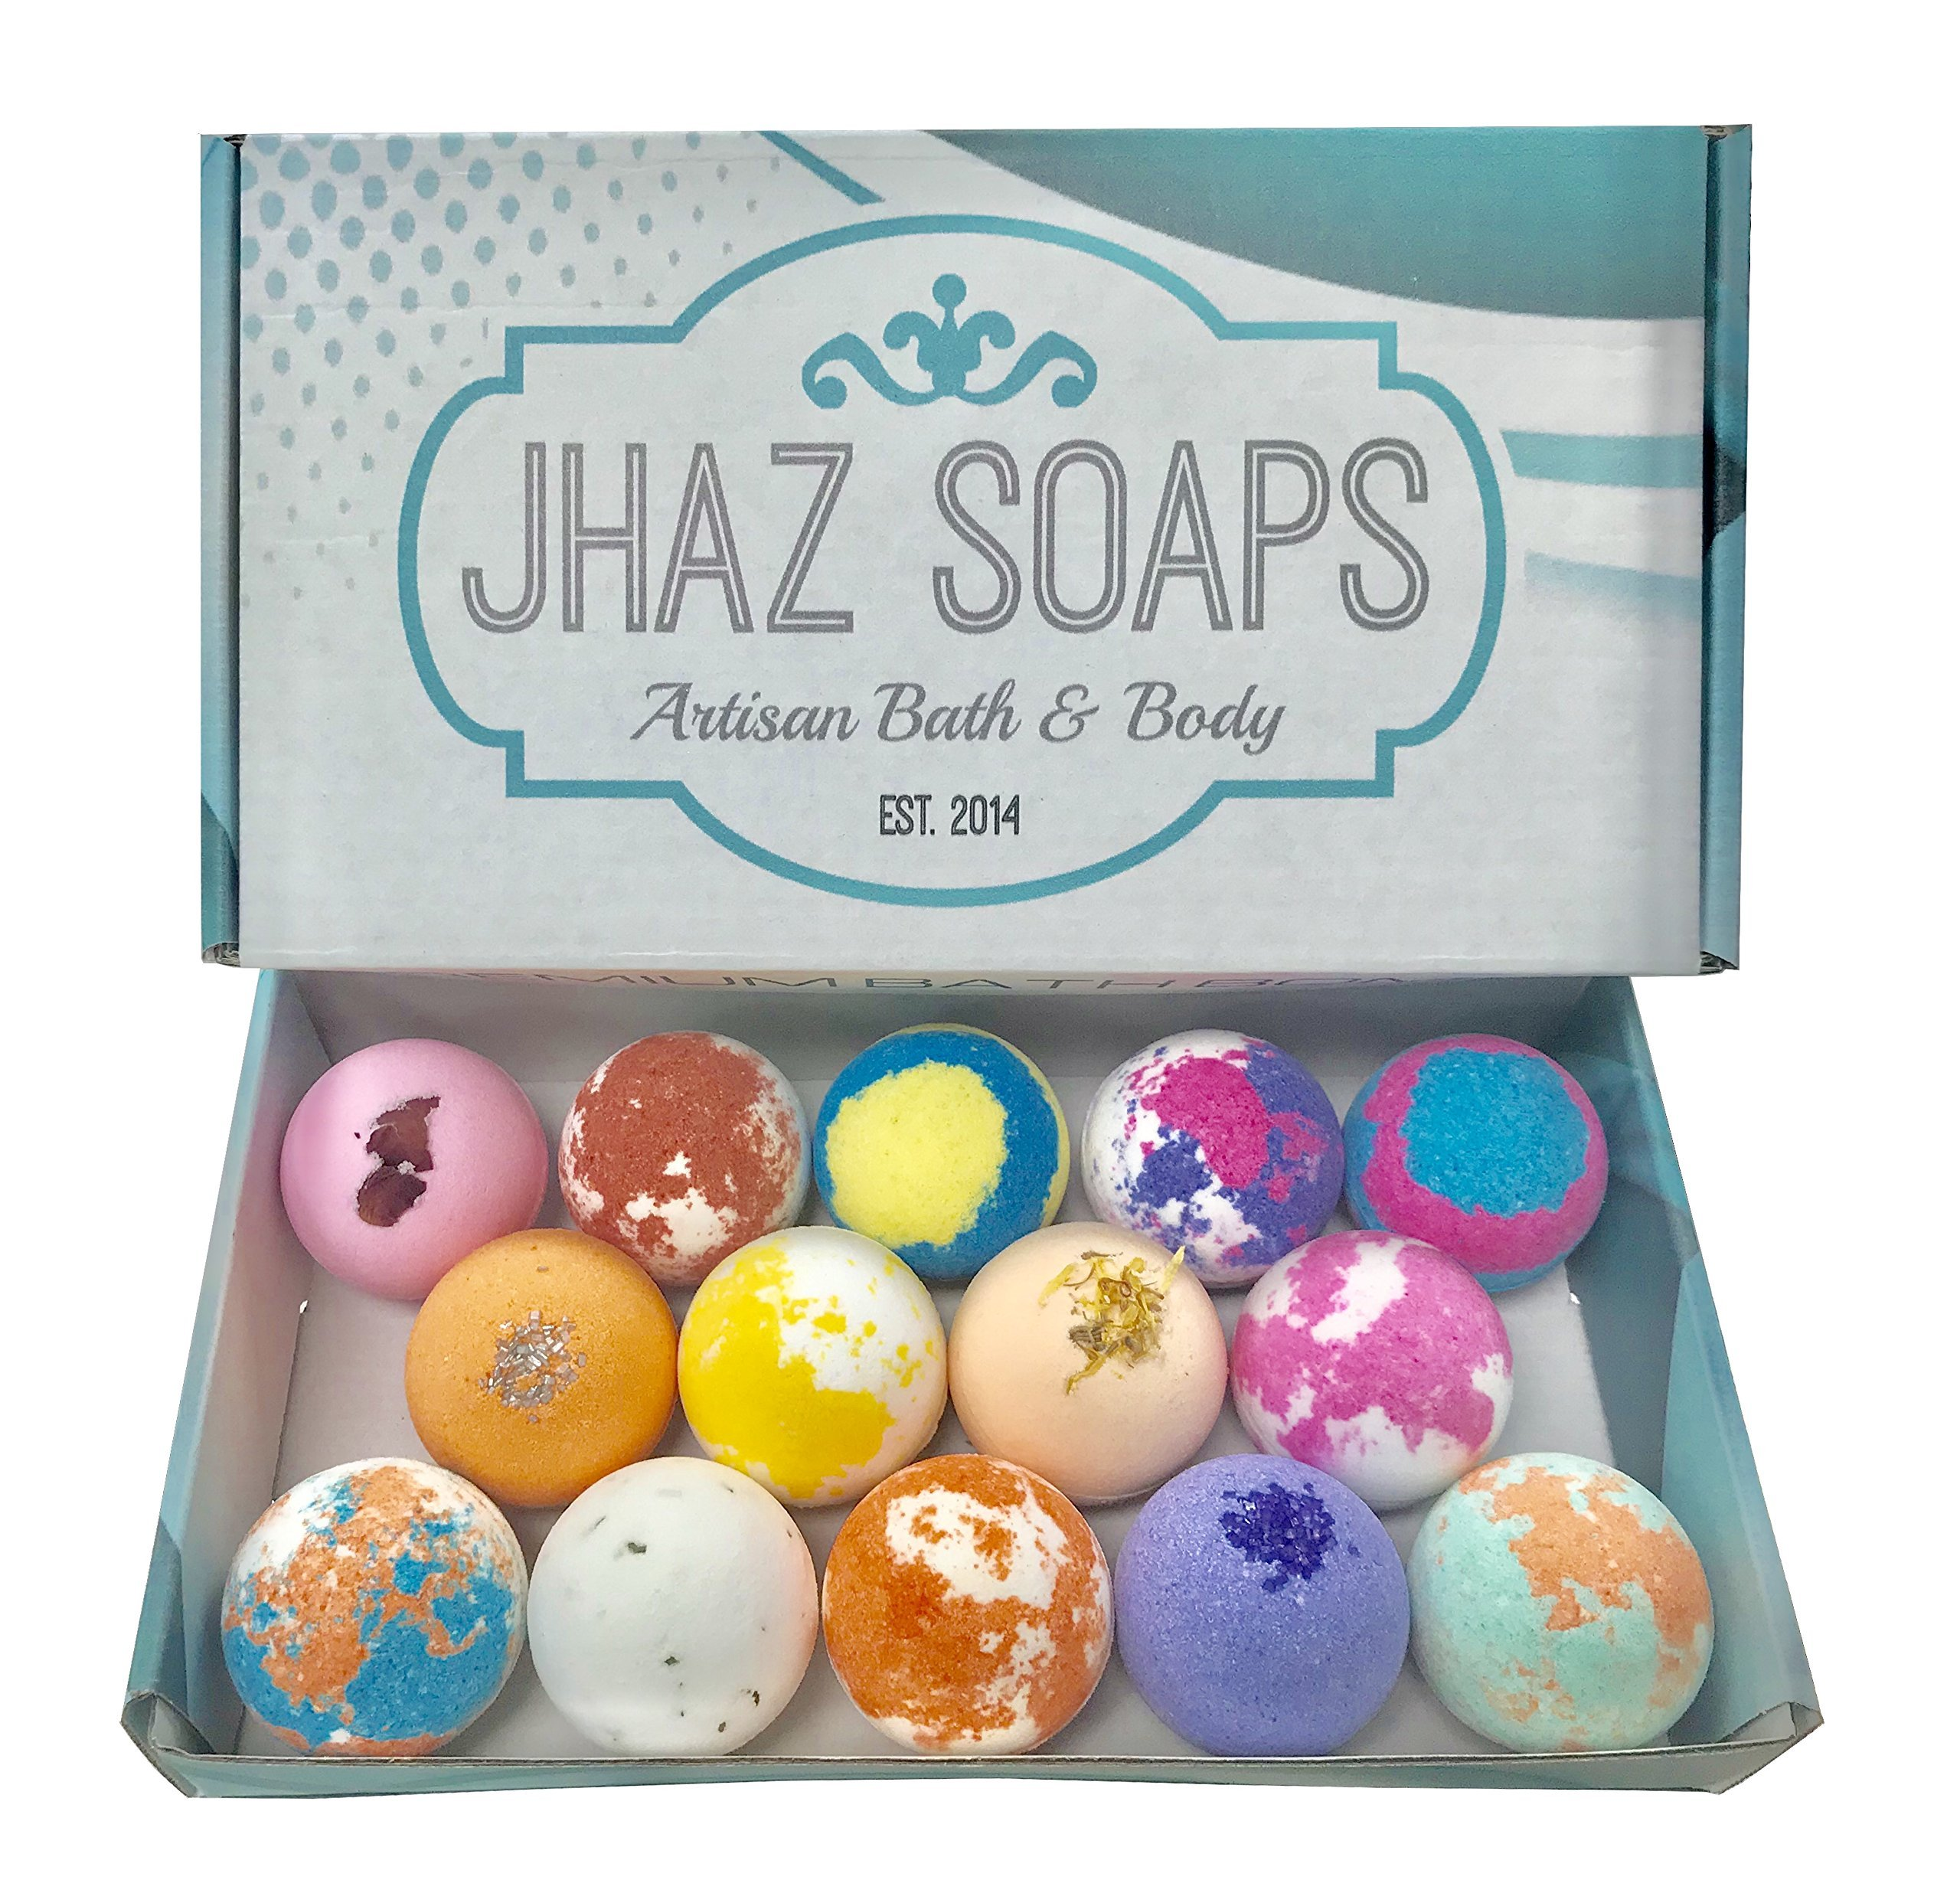 14 Bath Bombs by Jhaz Soaps: Gift Set, Lush Bath Experience, Colorful Bath Bomb, Non staining, Premium Colors and Moisturizing Ingredients, Made in the USA by Jhaz Soaps (Image #2)